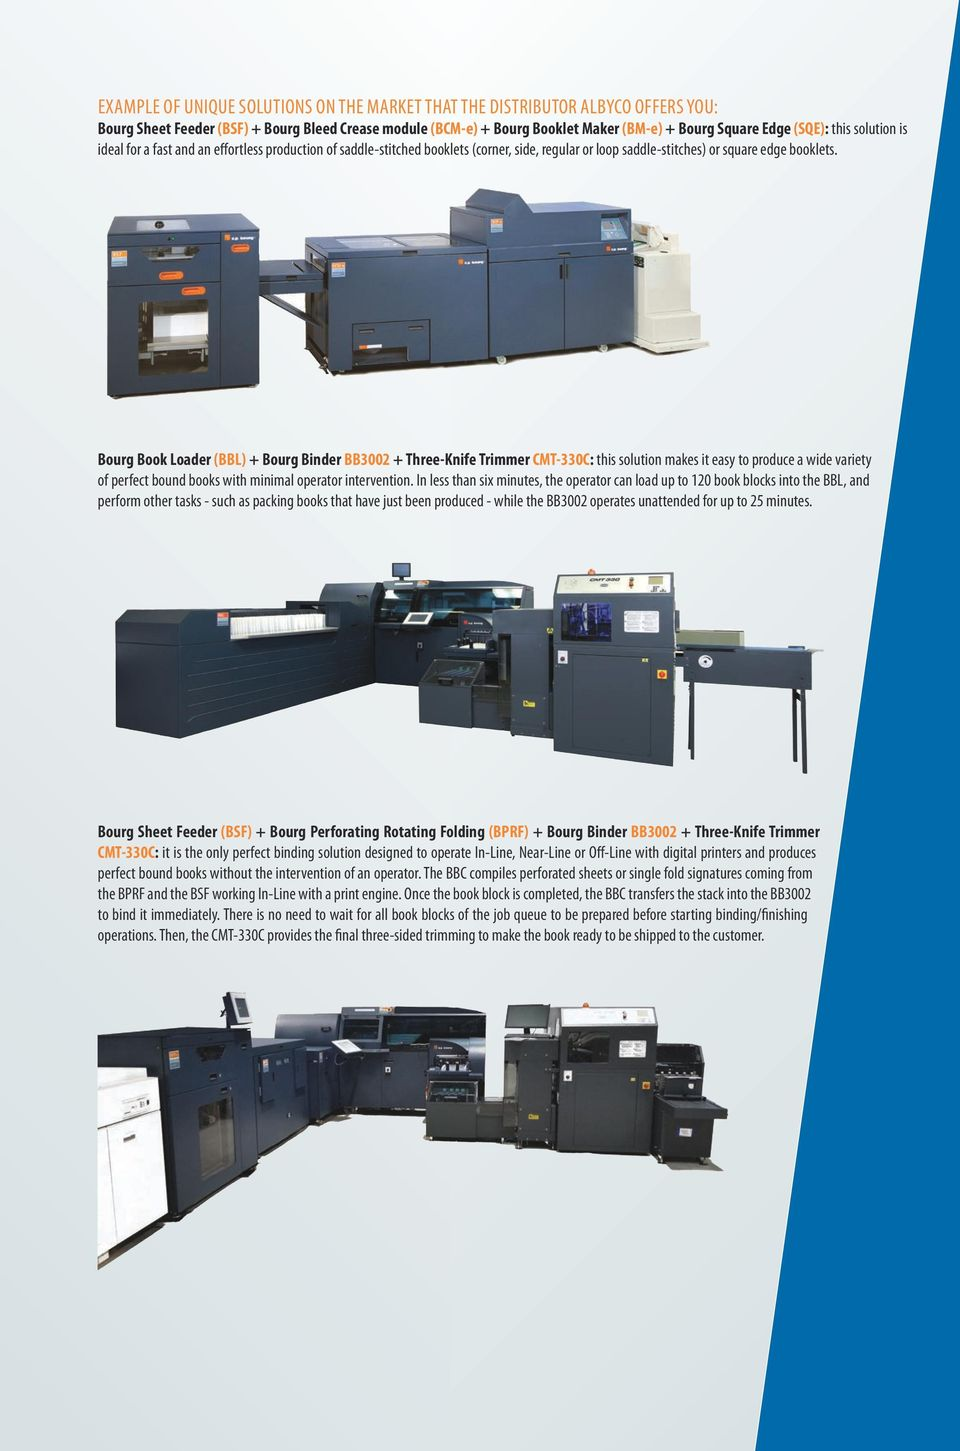 Bourg Book Loader (BBL) + Bourg Binder BB3002 + Three-Knife Trimmer CMT-330C: this solution makes it easy to produce a wide variety of perfect bound books with minimal operator intervention.